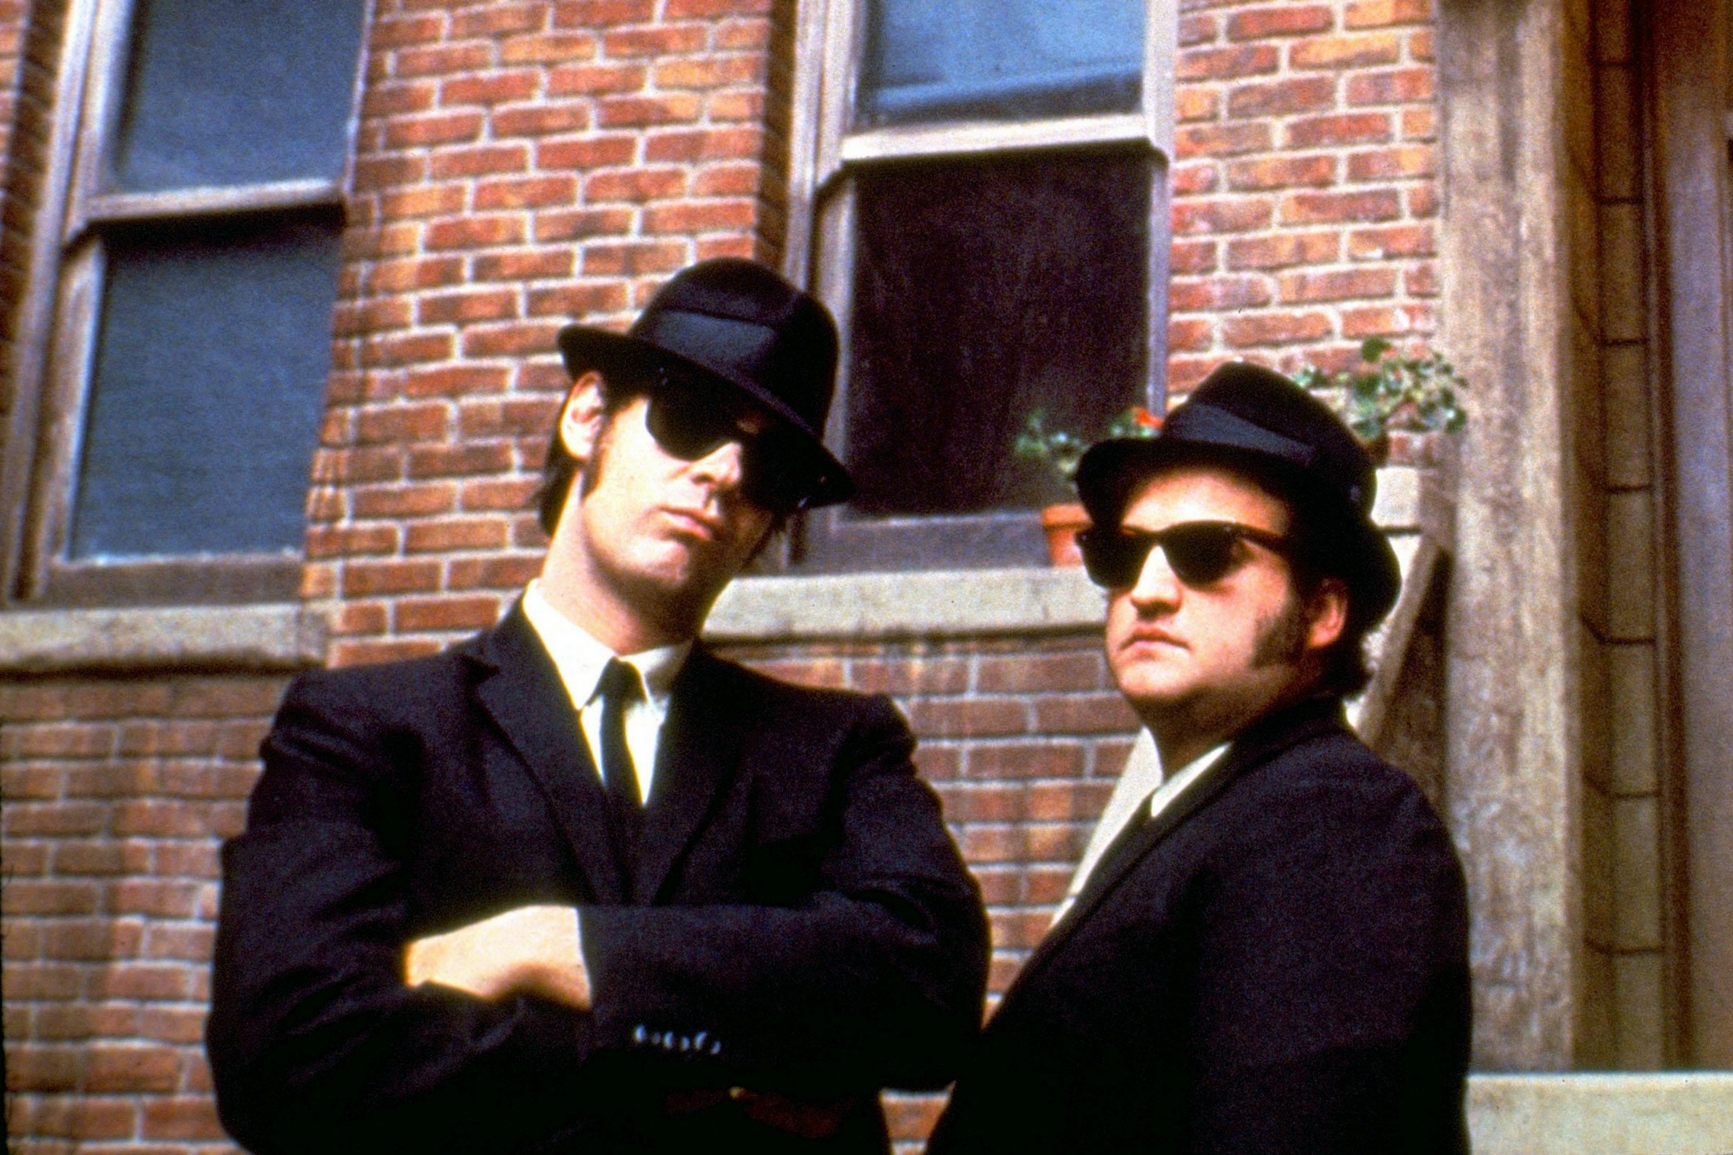 Image of the Blue Brothers from the film